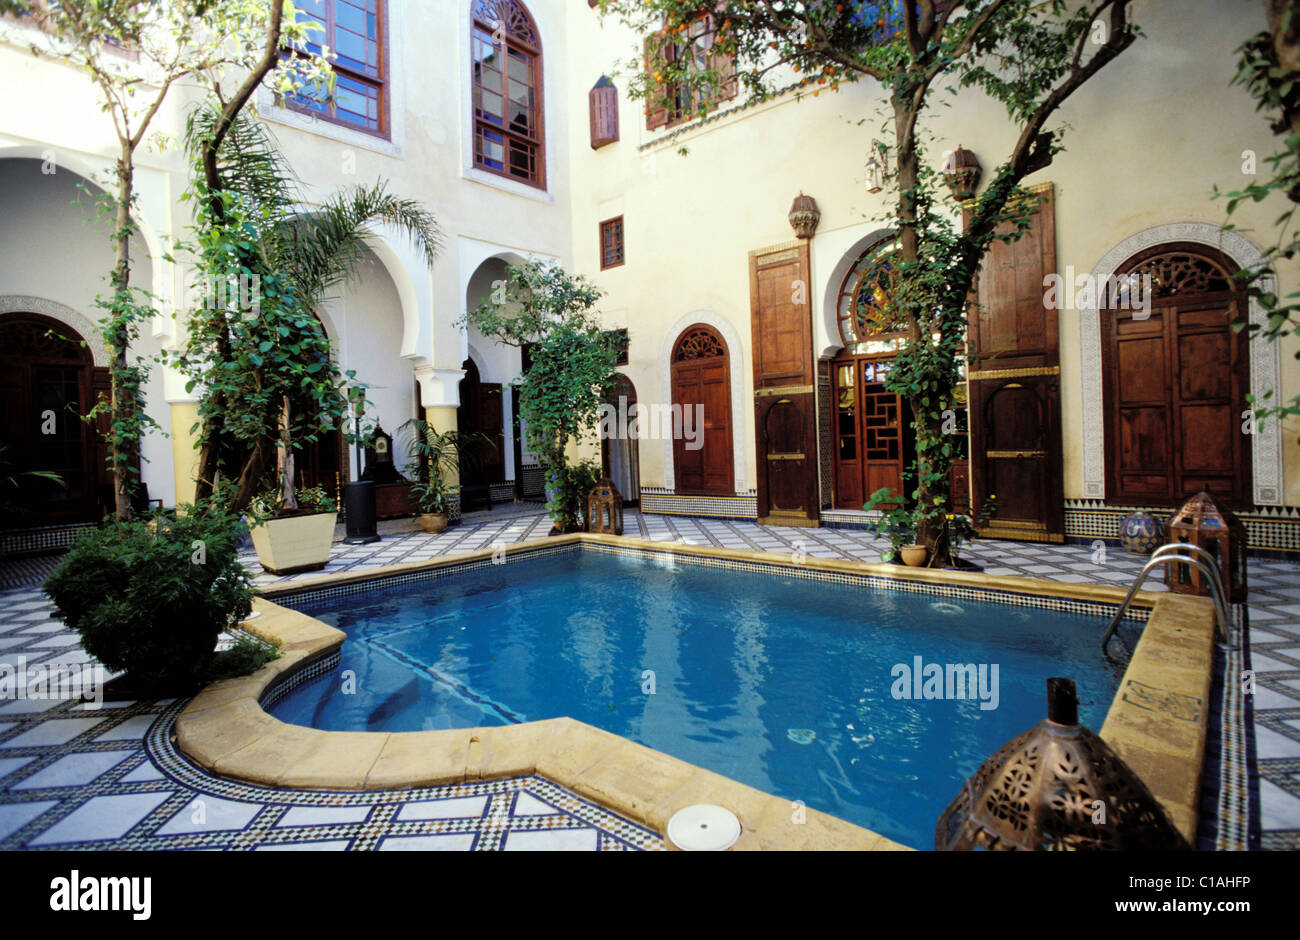 Morocco Fes Riad Maison Bleue The Swimming Pool In The